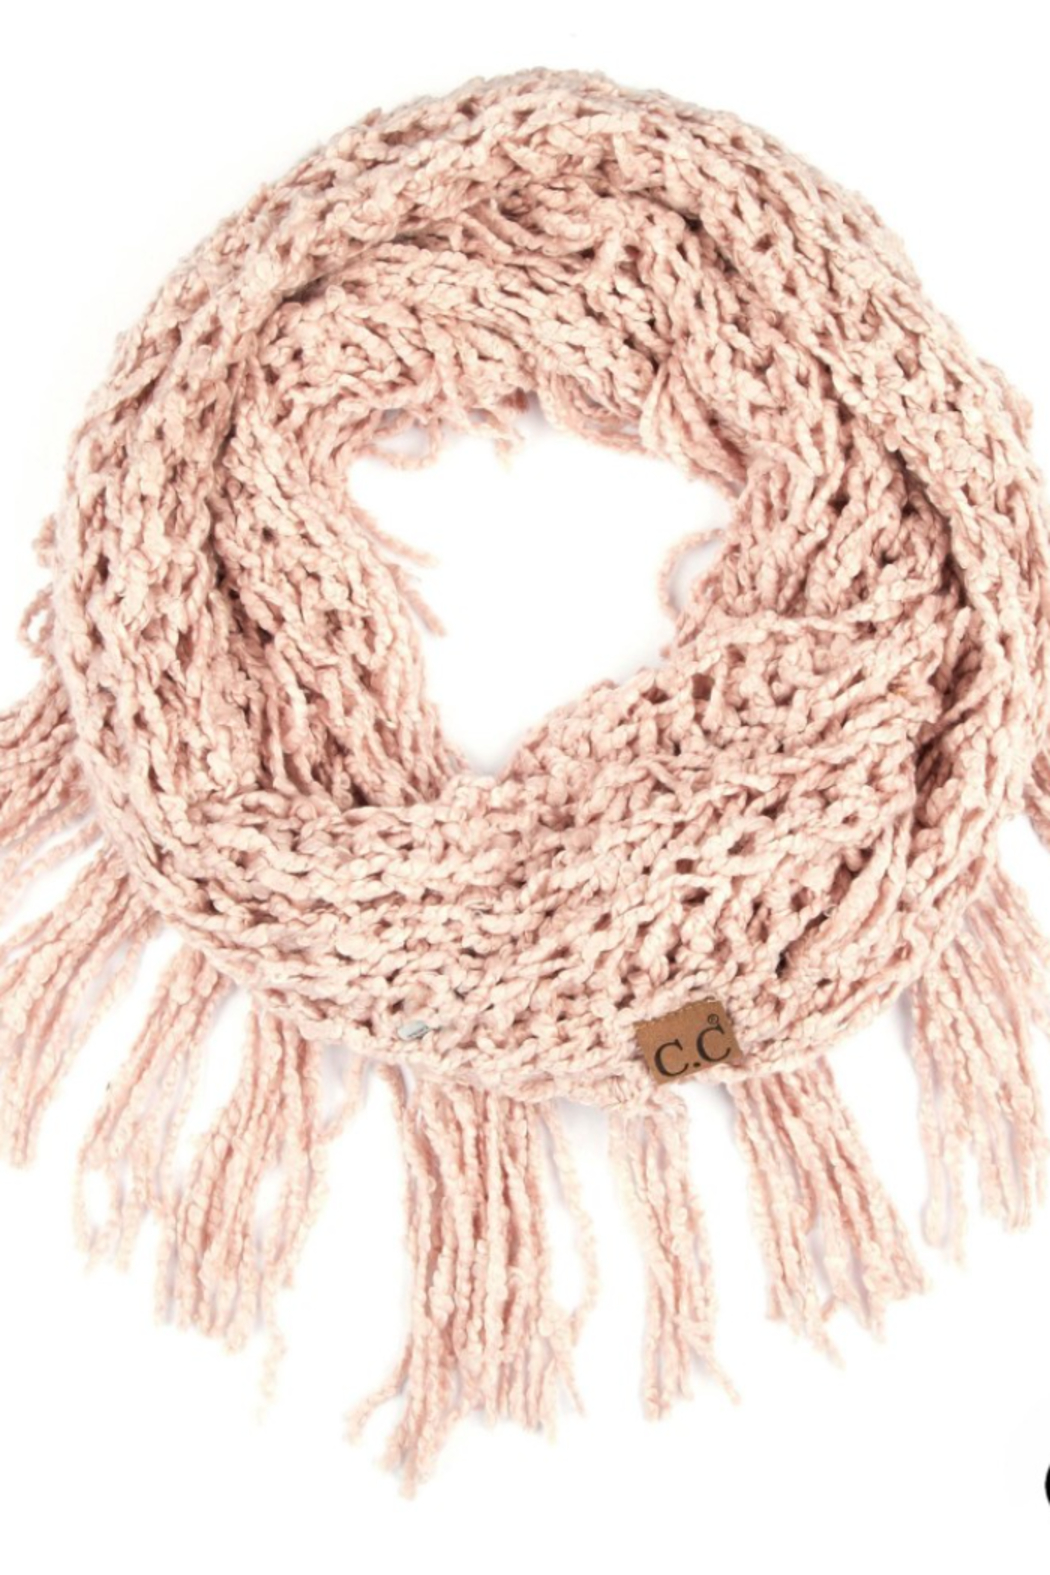 C.C Chenille Infinity Scarf Featuring Fringe Tassels - Front Cropped Image